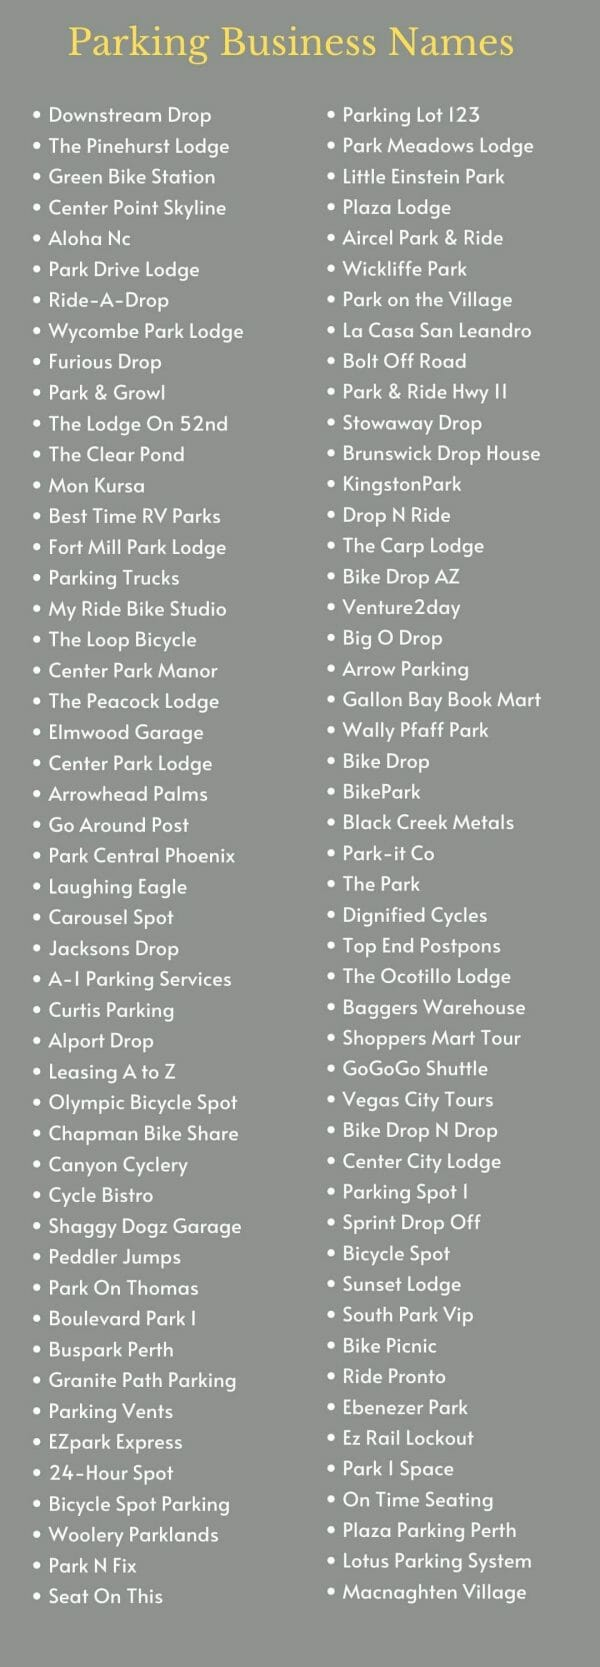 Parking Business Names